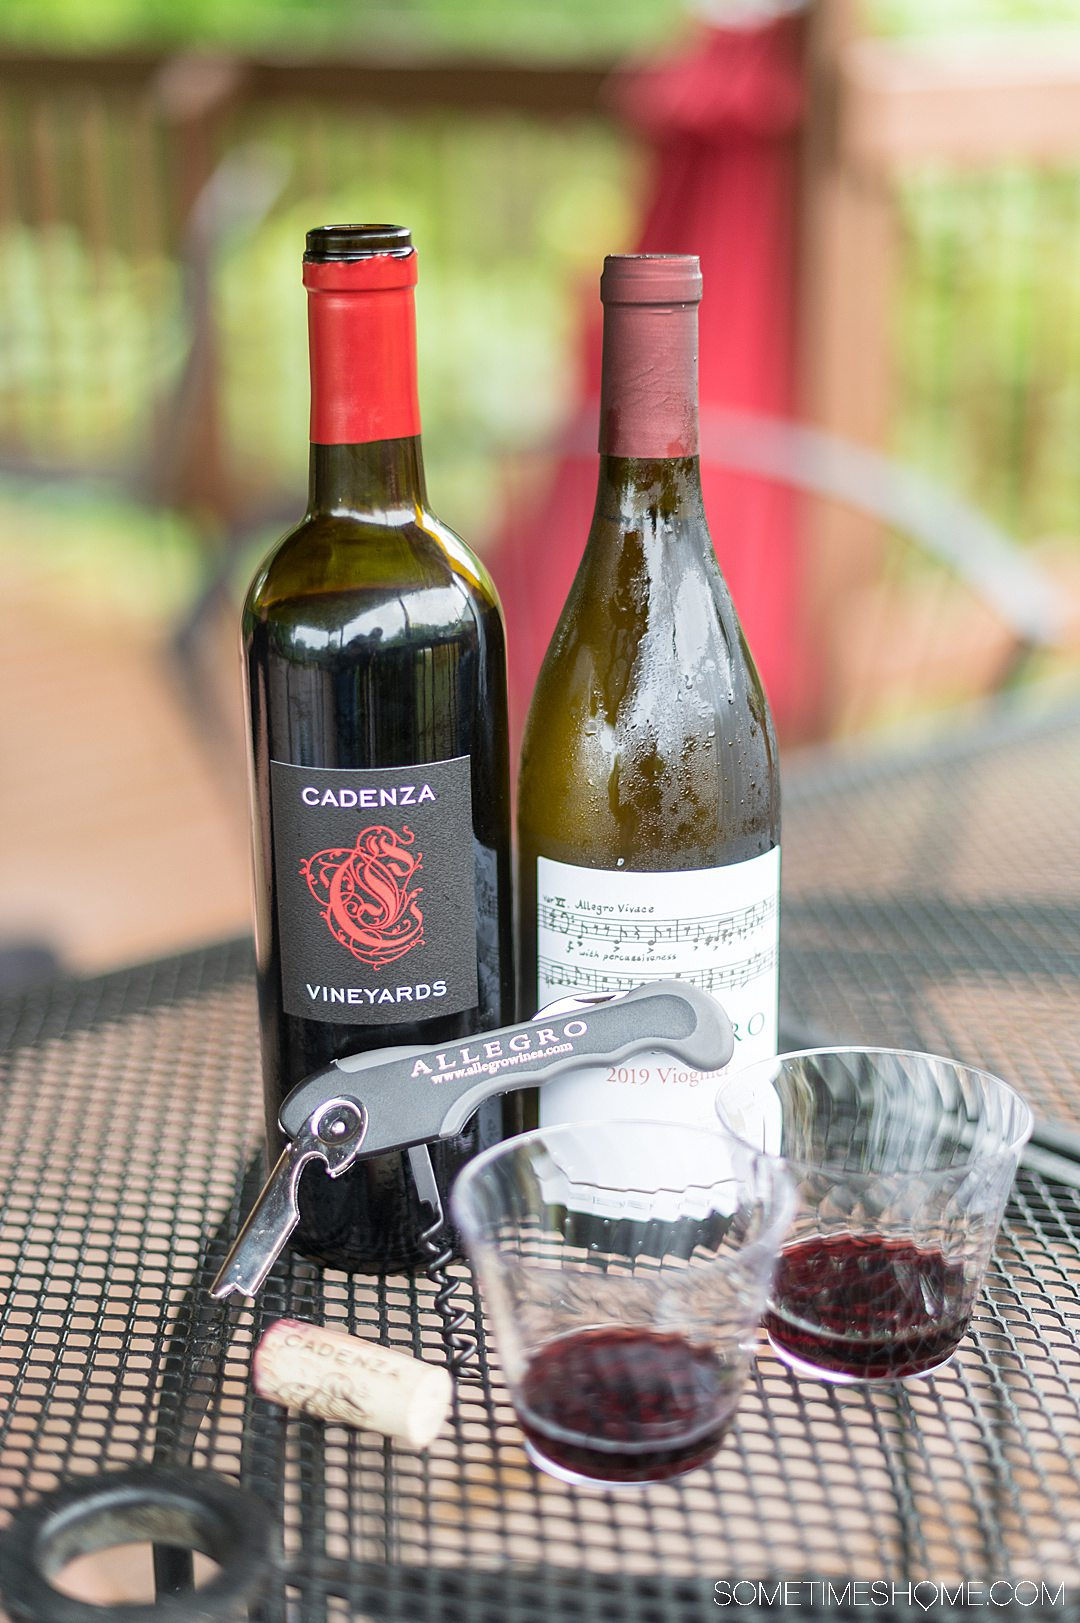 Bottles of wine, glasses and a wine opener